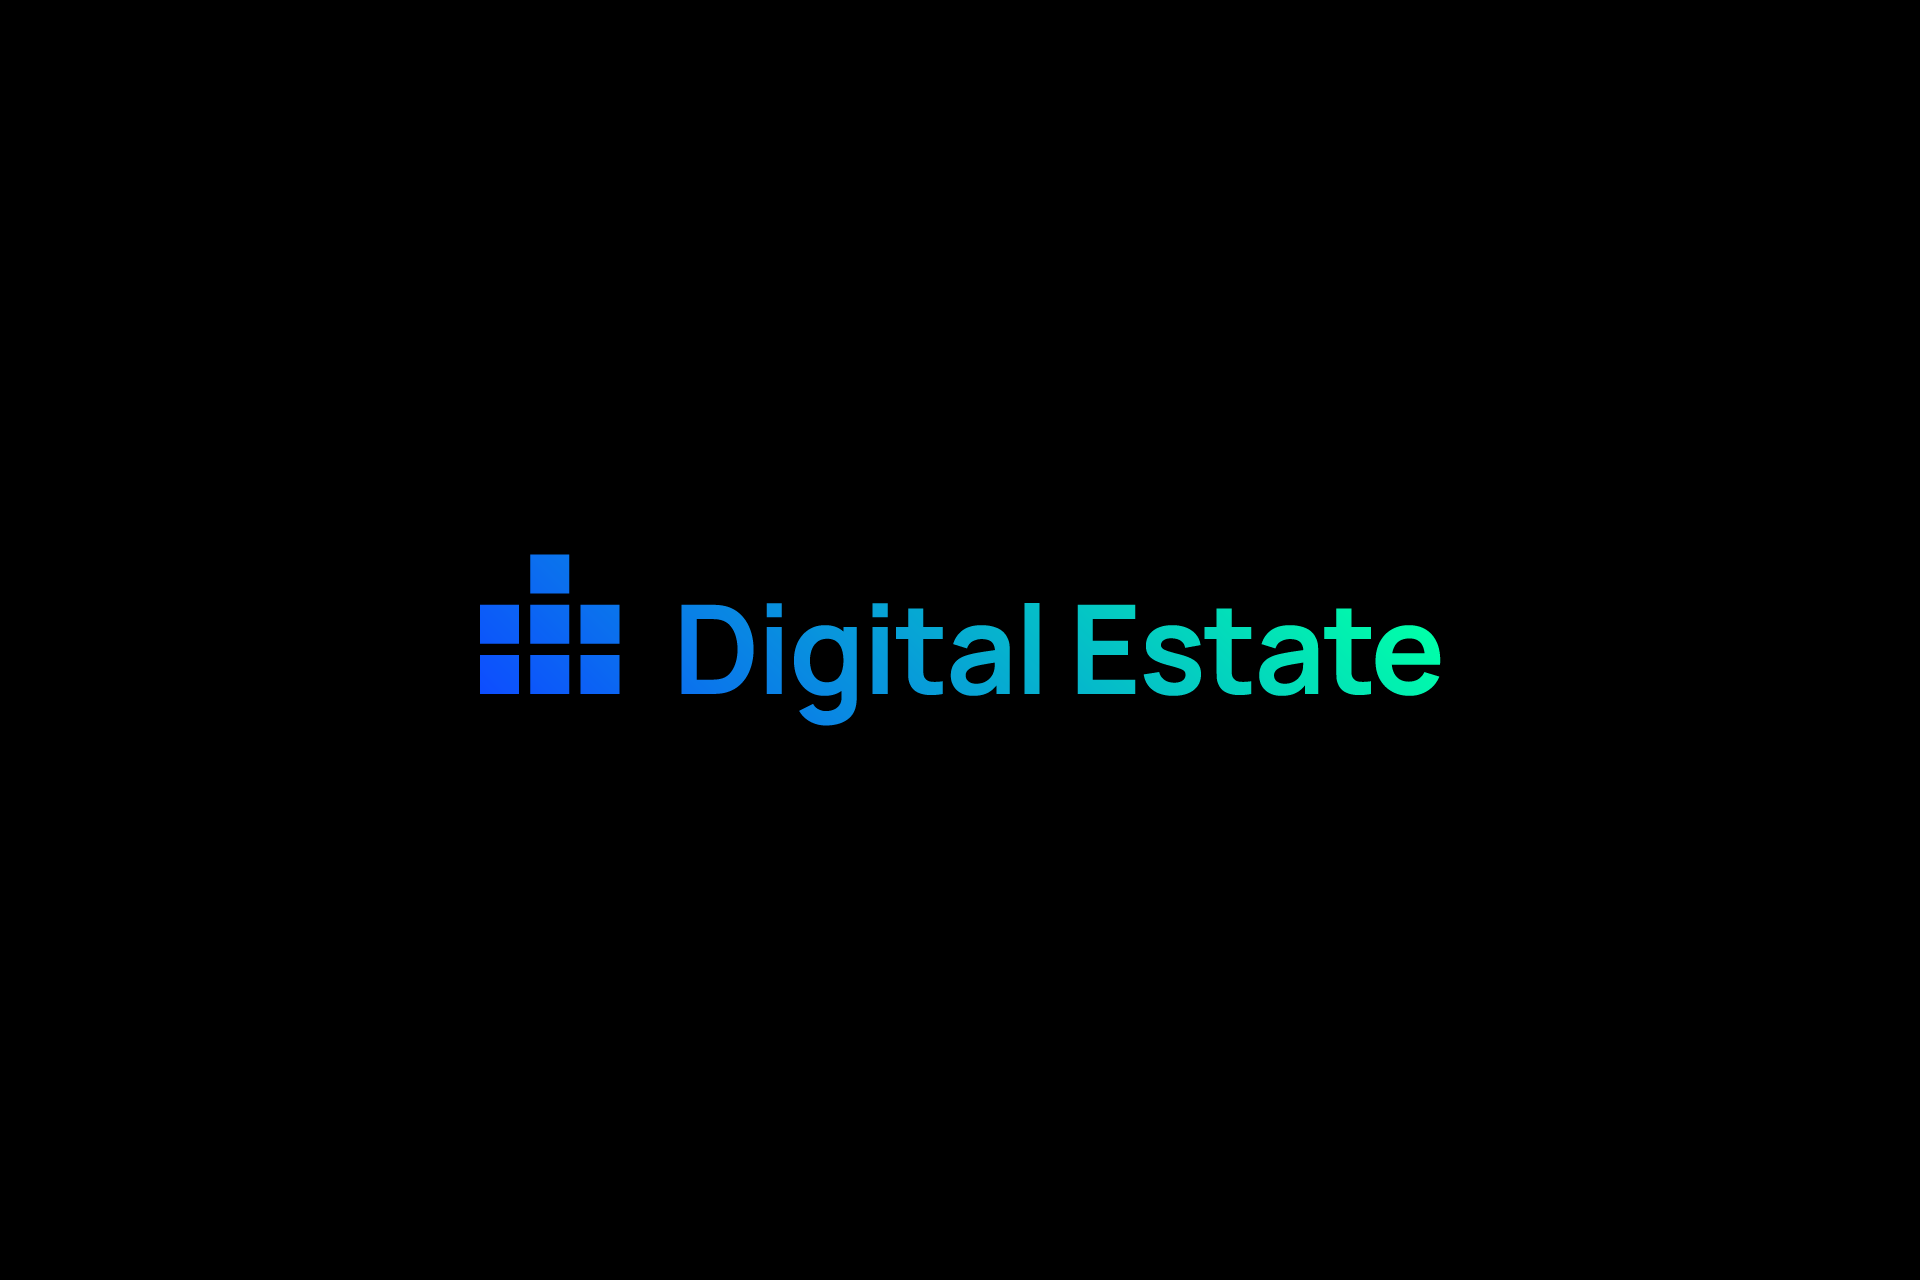 Digital Estate Blue/Green Logotype with black background - wide banner